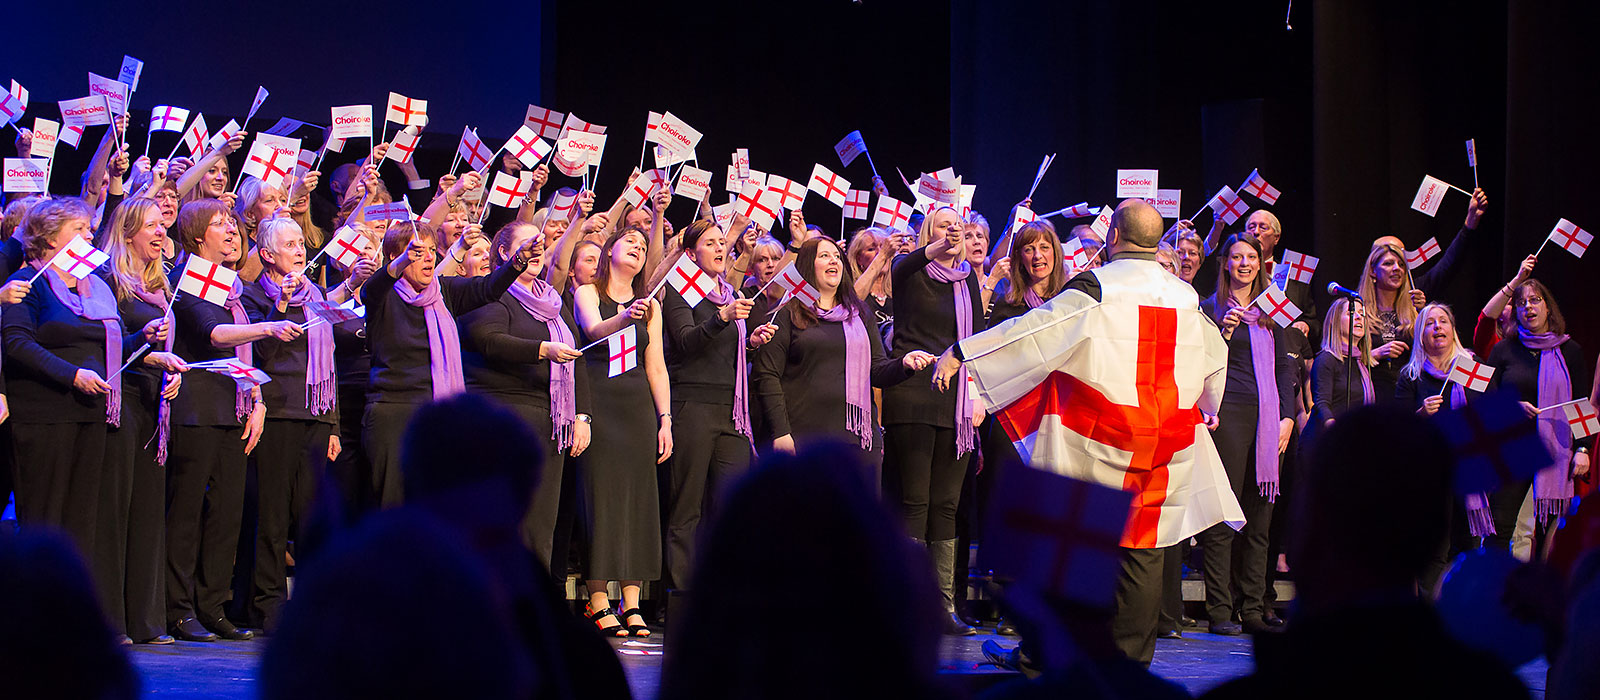 Choiroke 2016 concert at Dorking Halls